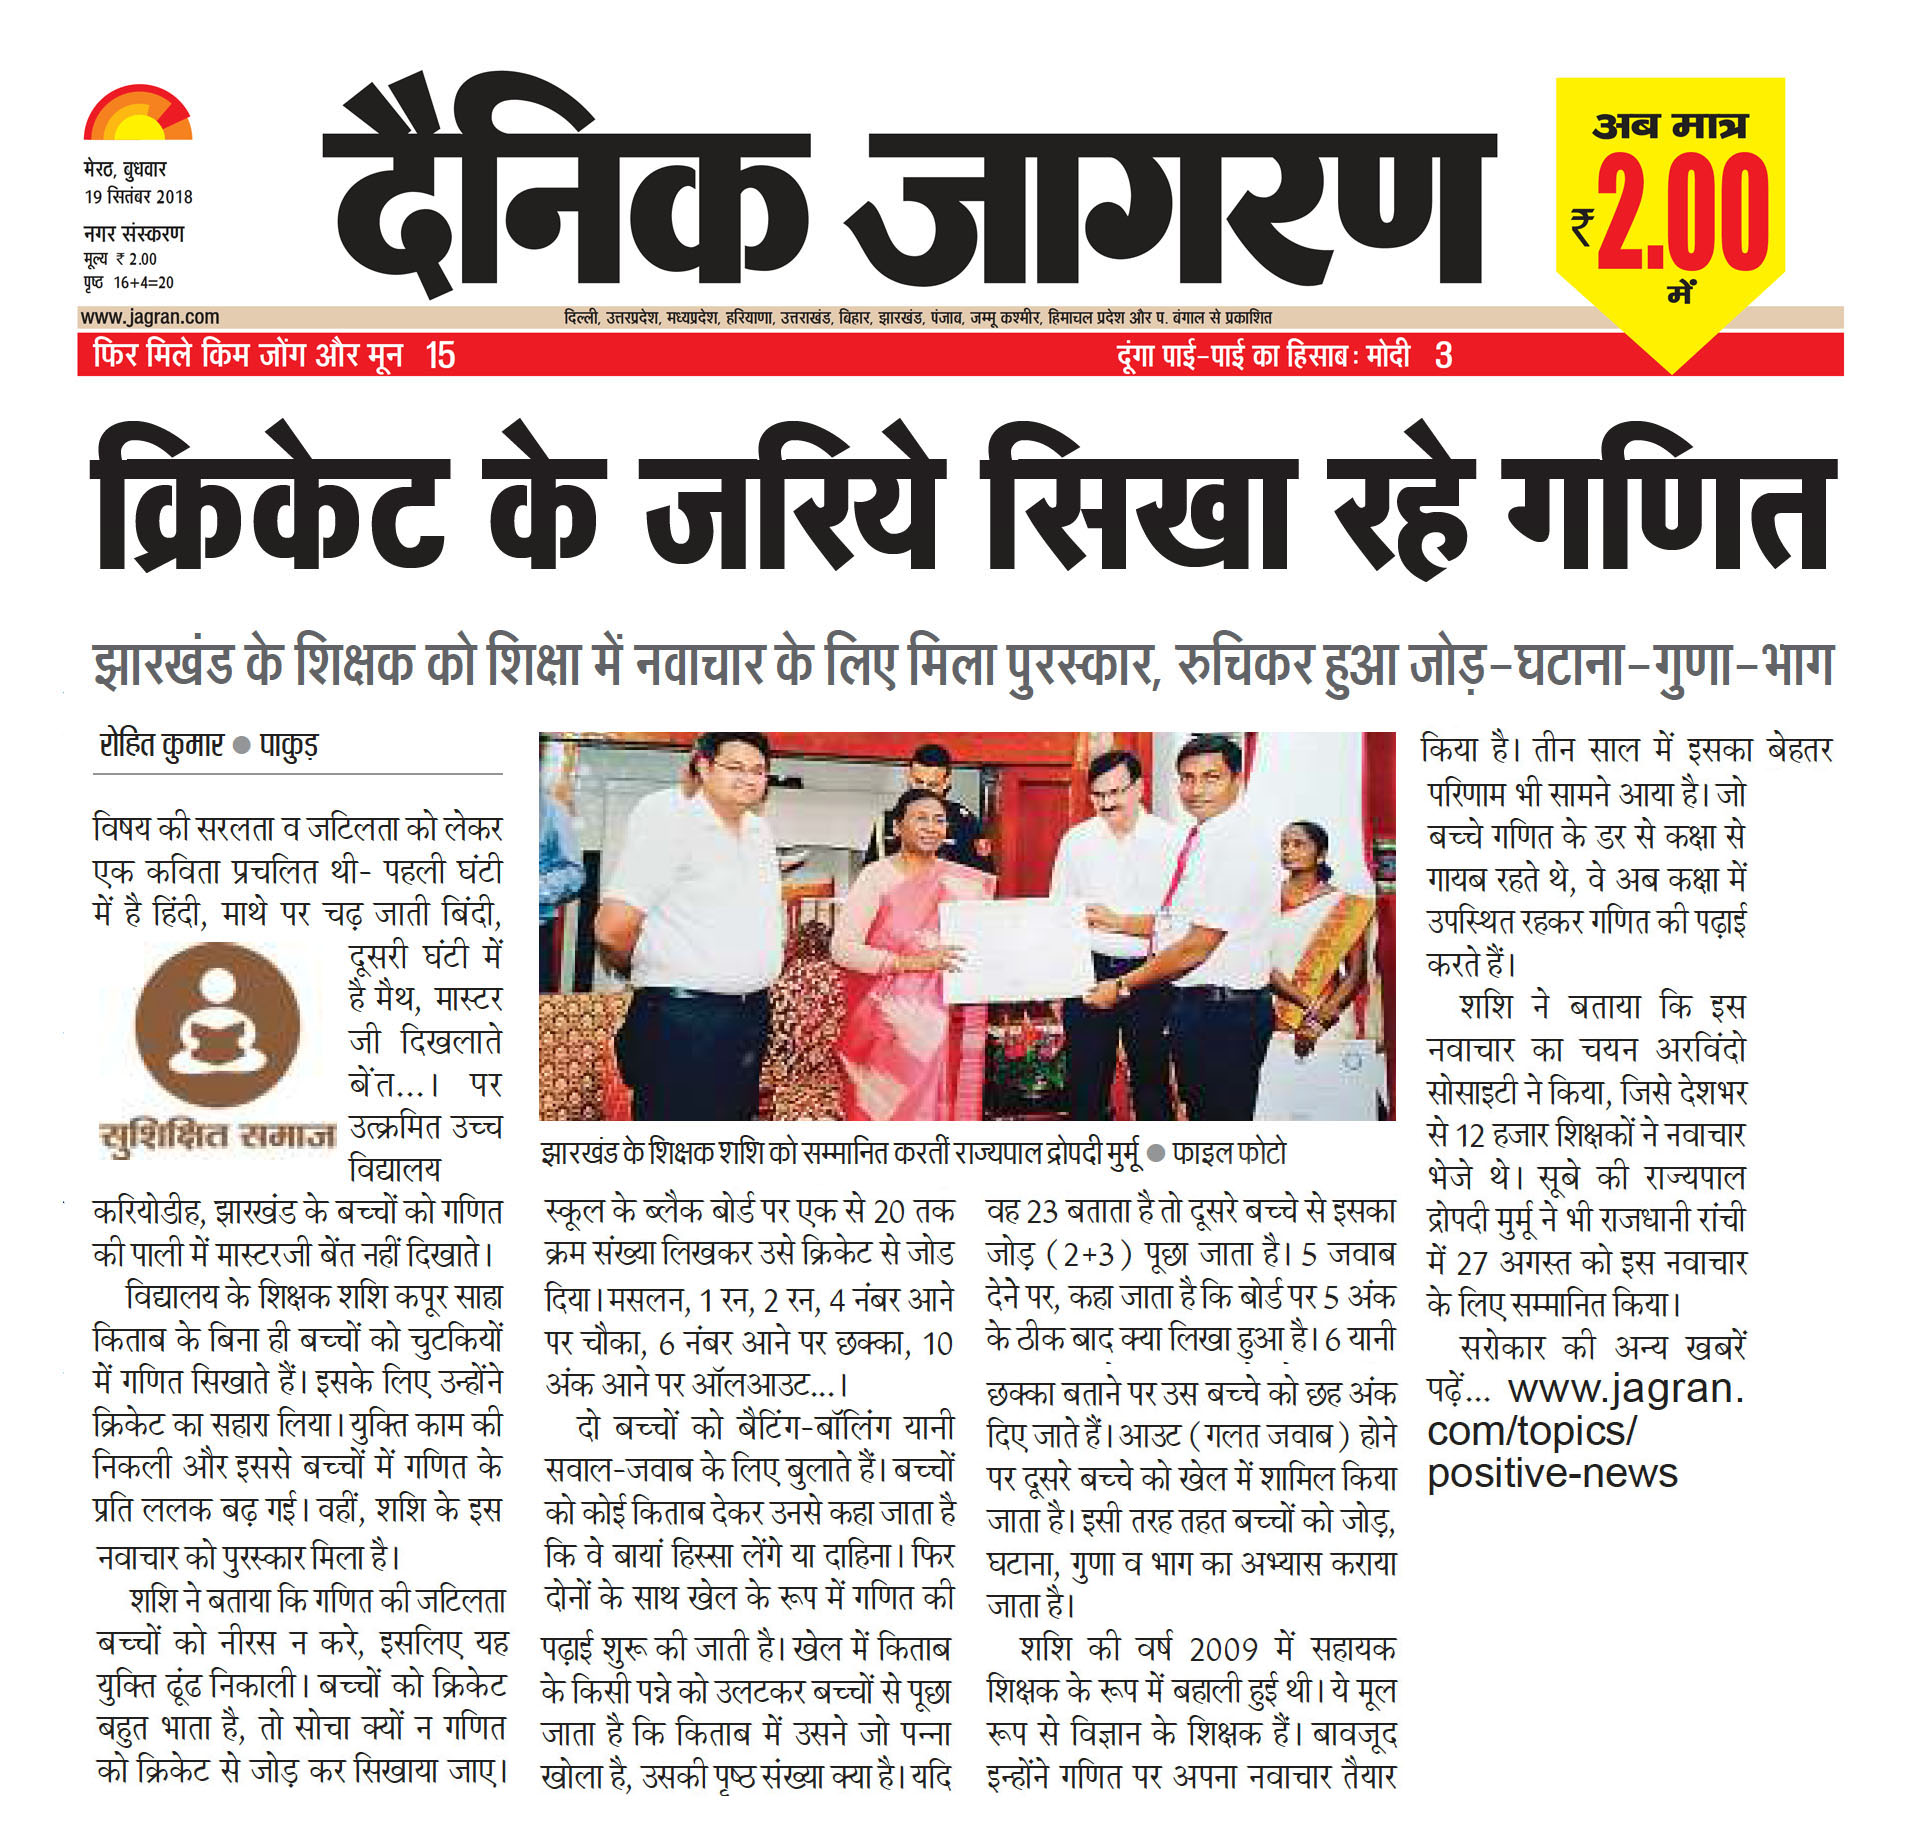 Meerut news- learning maths with cricket